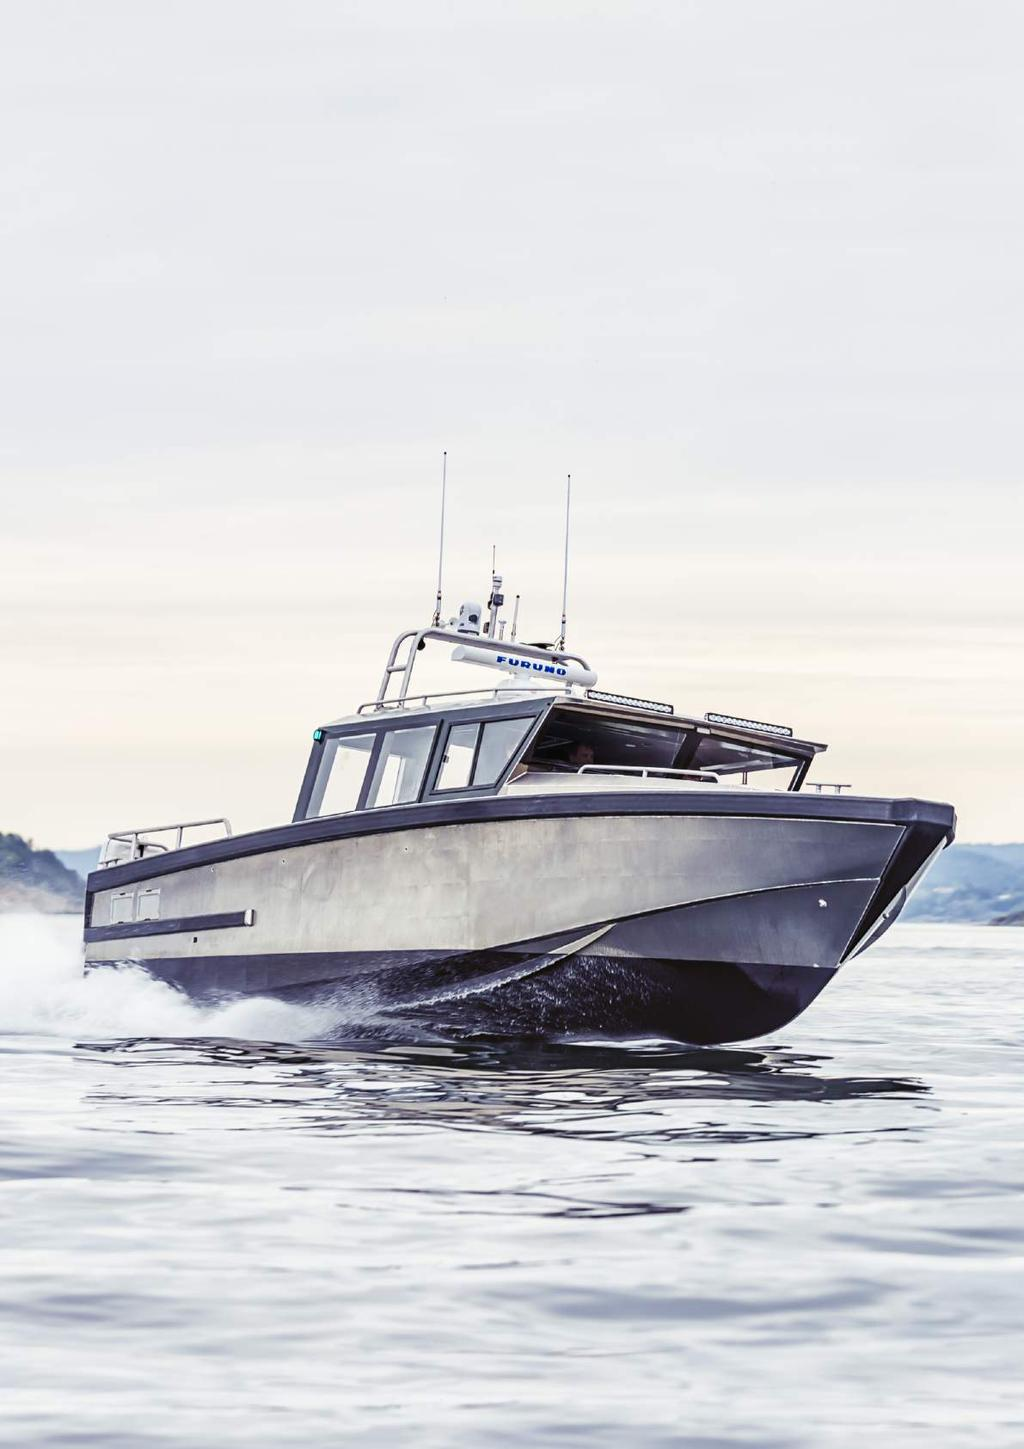 Swede Ship Marine builds professional and exclusive boats for the most demanding